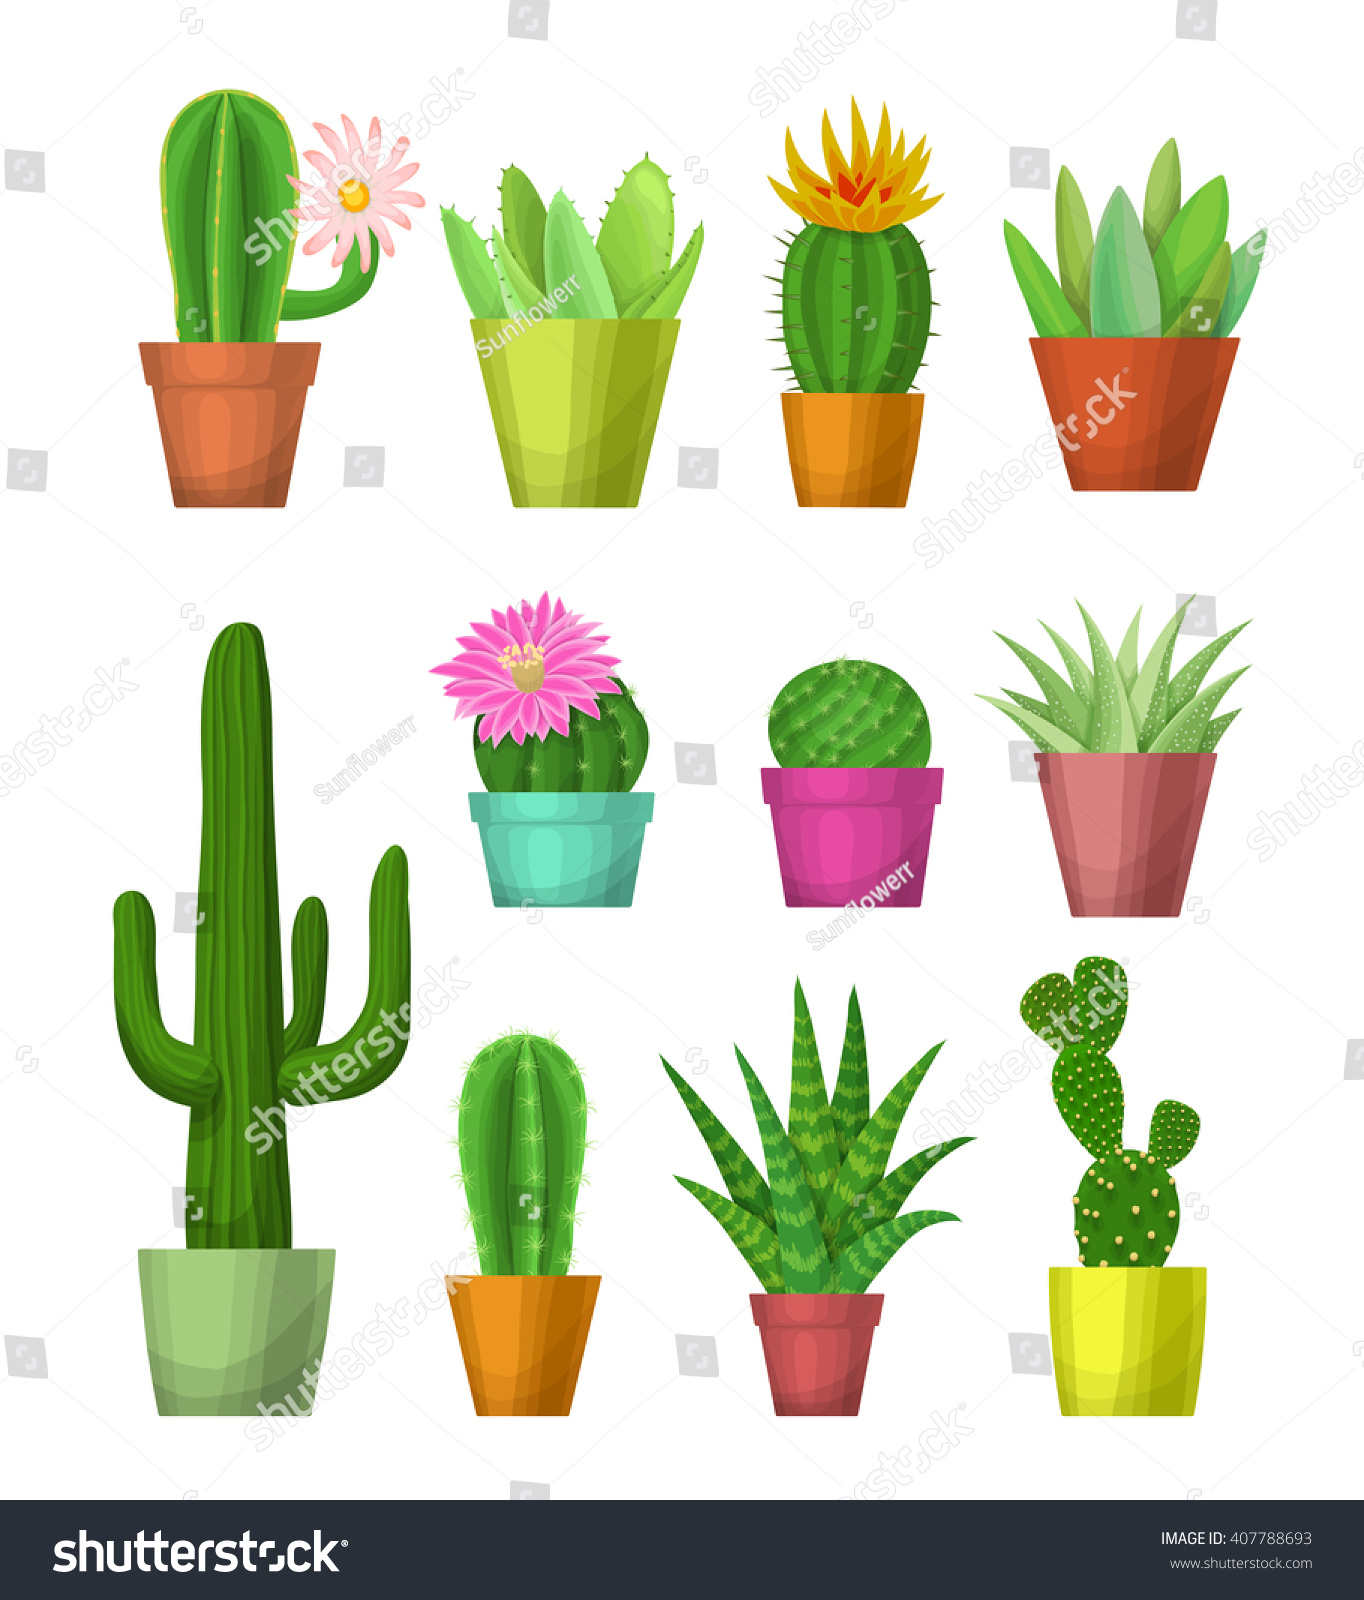 Cactus and succulent with flowers in pots hand drawn vector illustration room cactus and succulent on white background blooming cacti and succulents for